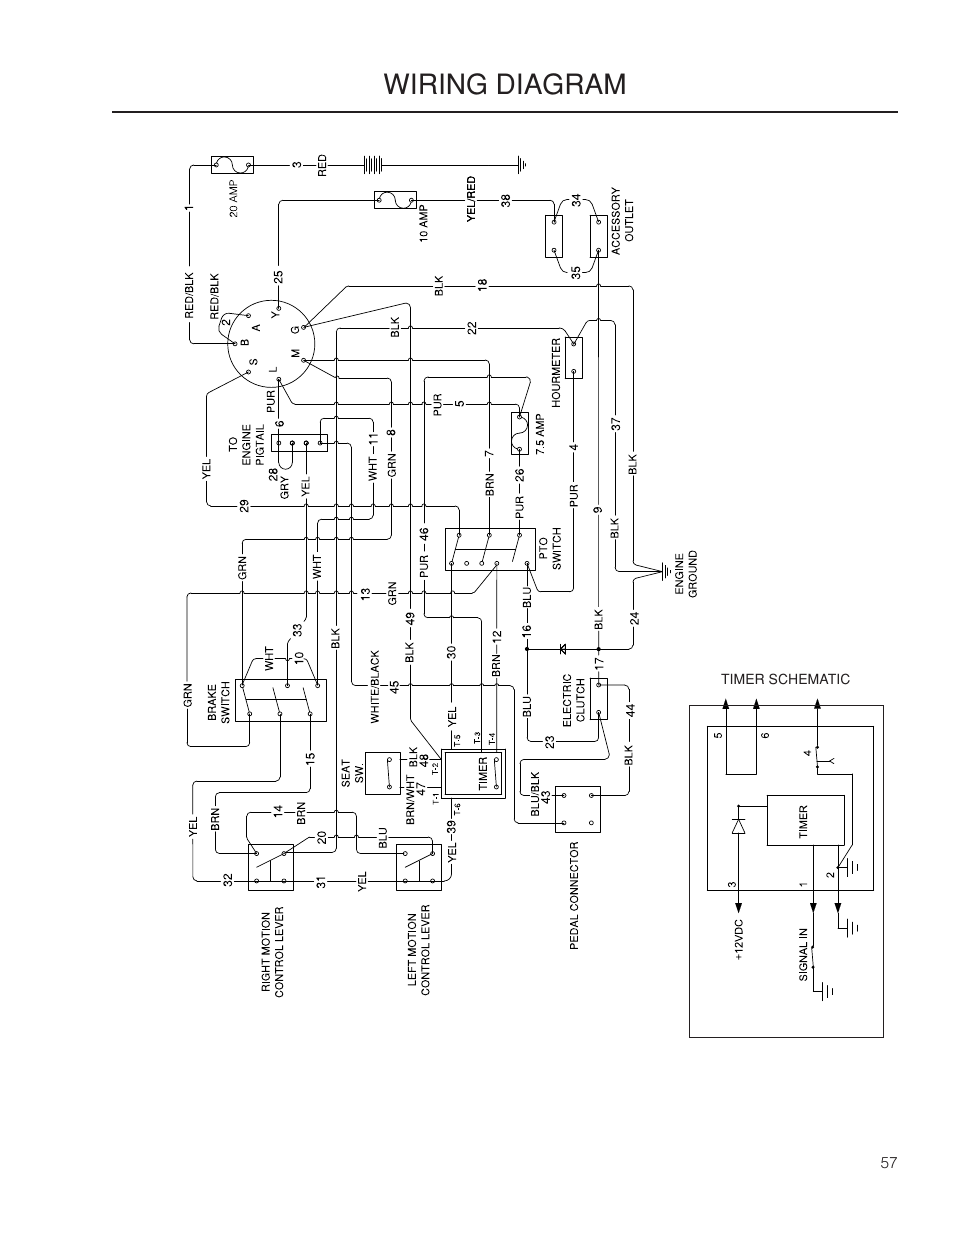 Dixon 4423 Wiring Diagram Lawn Mower Libraries Diagrams Imgwiring Grizzly Se 966516601 User